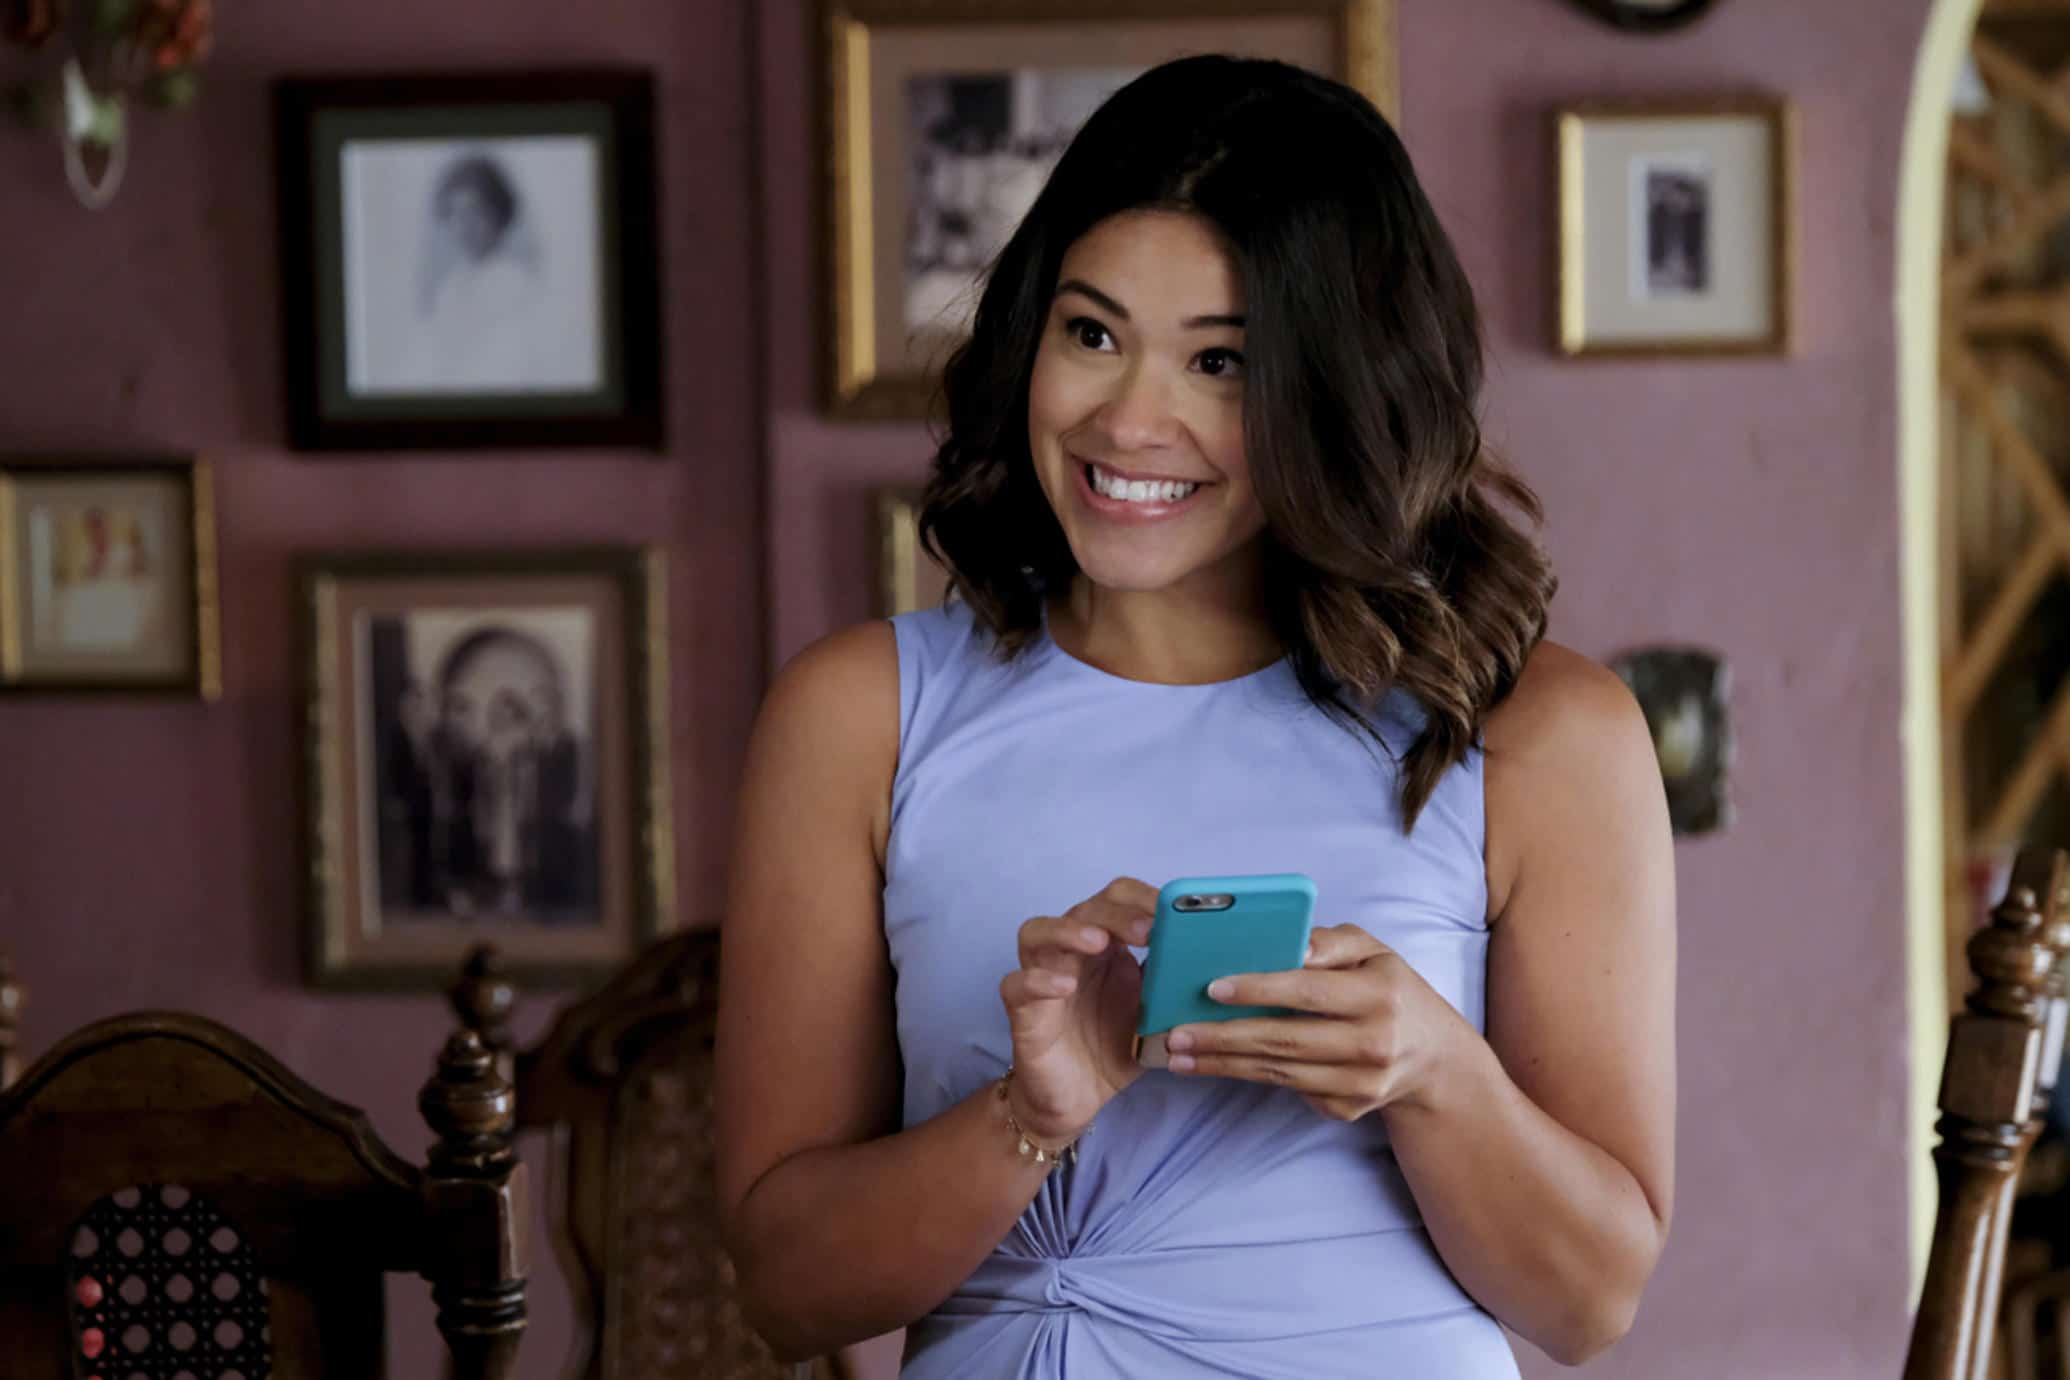 The Novel Jane's Been Writing in 'Jane the Virgin' Is Getting Published IRL